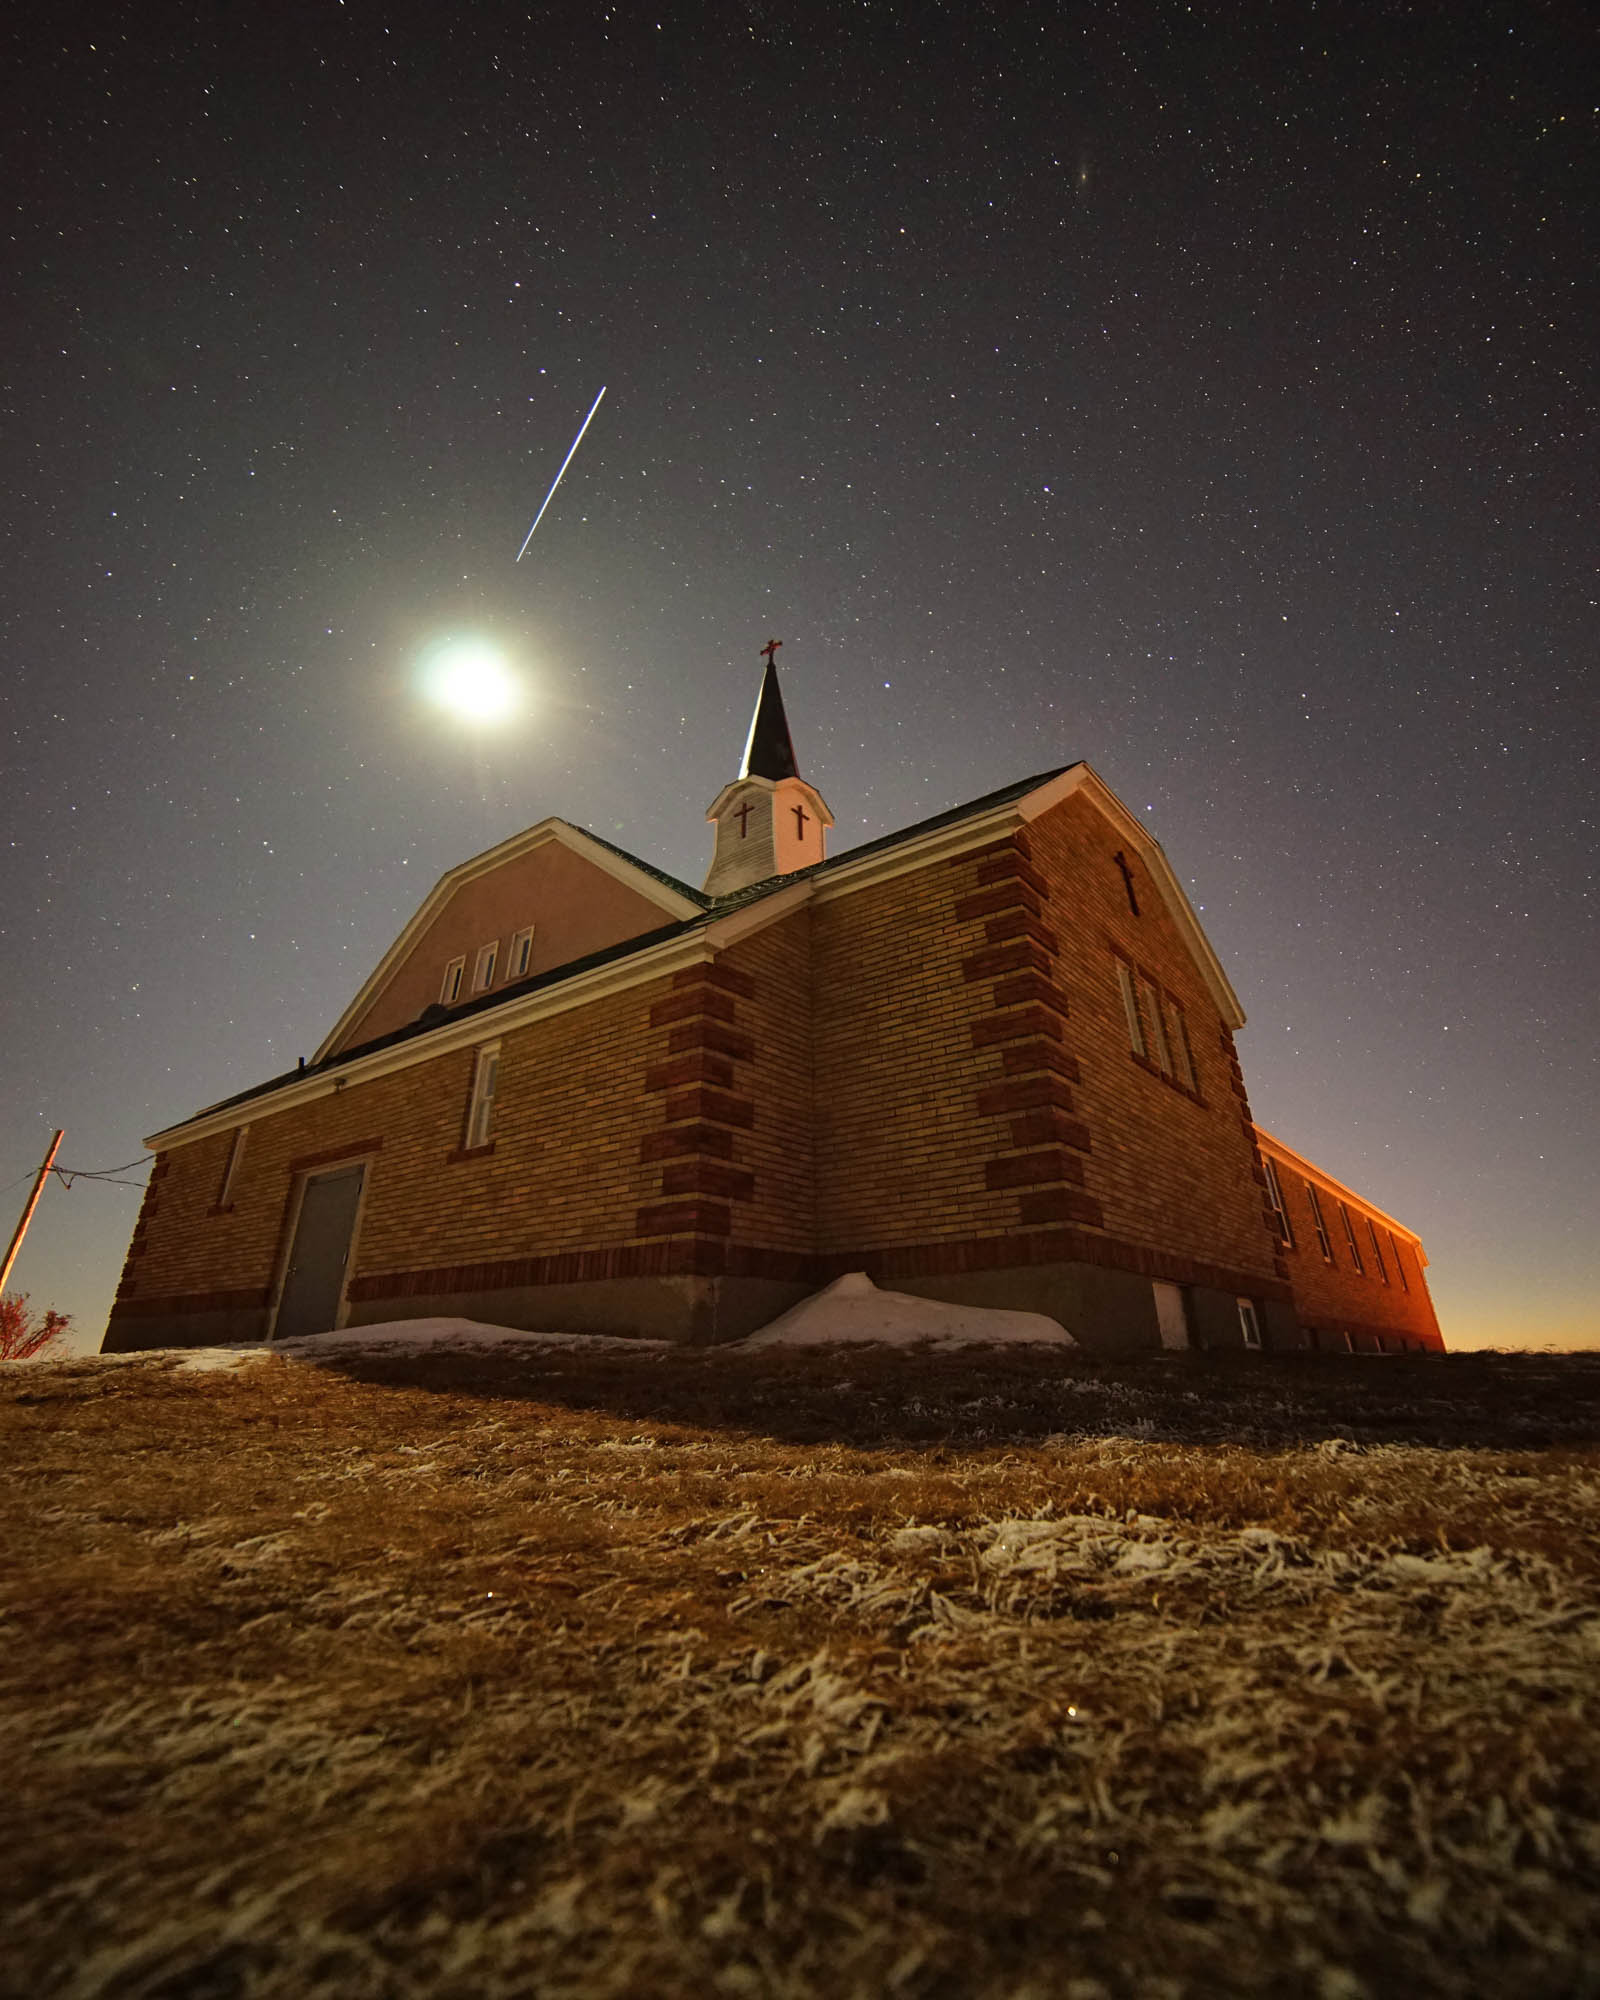 St. Vincents Catholic Church, rural Morton County, North Dakota. Moon above, with international space station flying over.